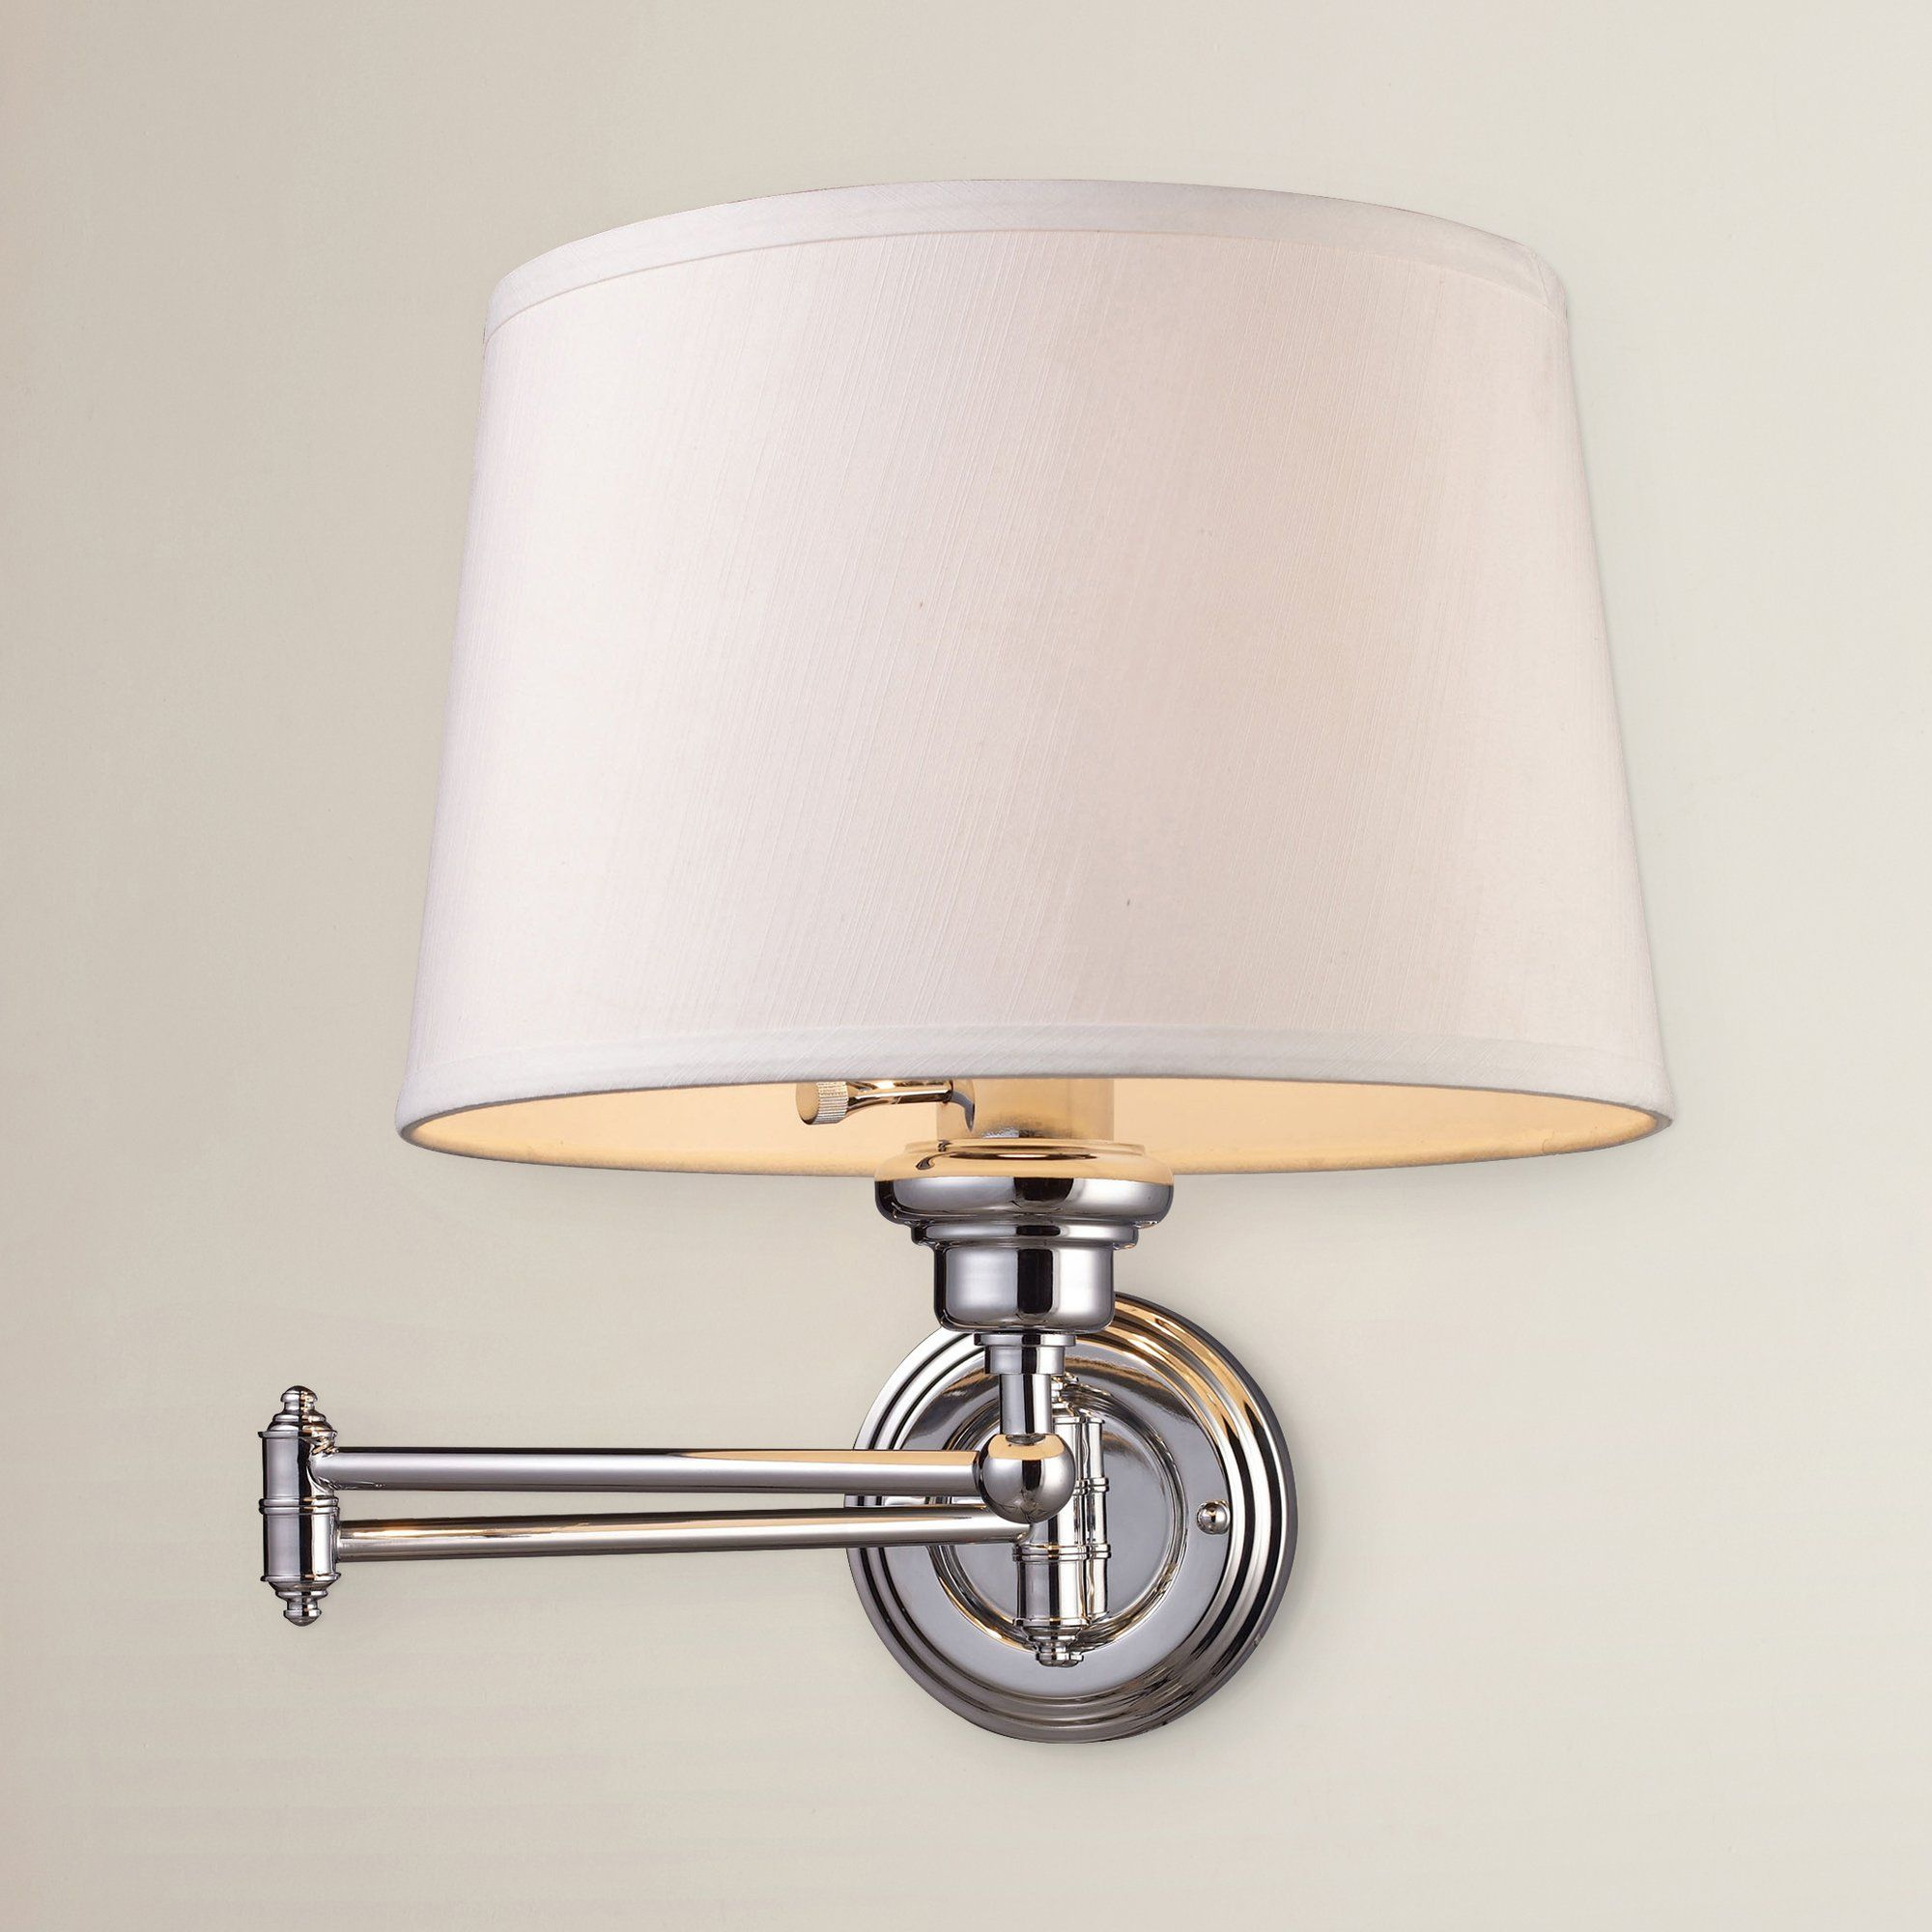 Vanderpool Swing Arm Lamp Swing Arm Lamp Swing Arm Wall Sconce Sconces